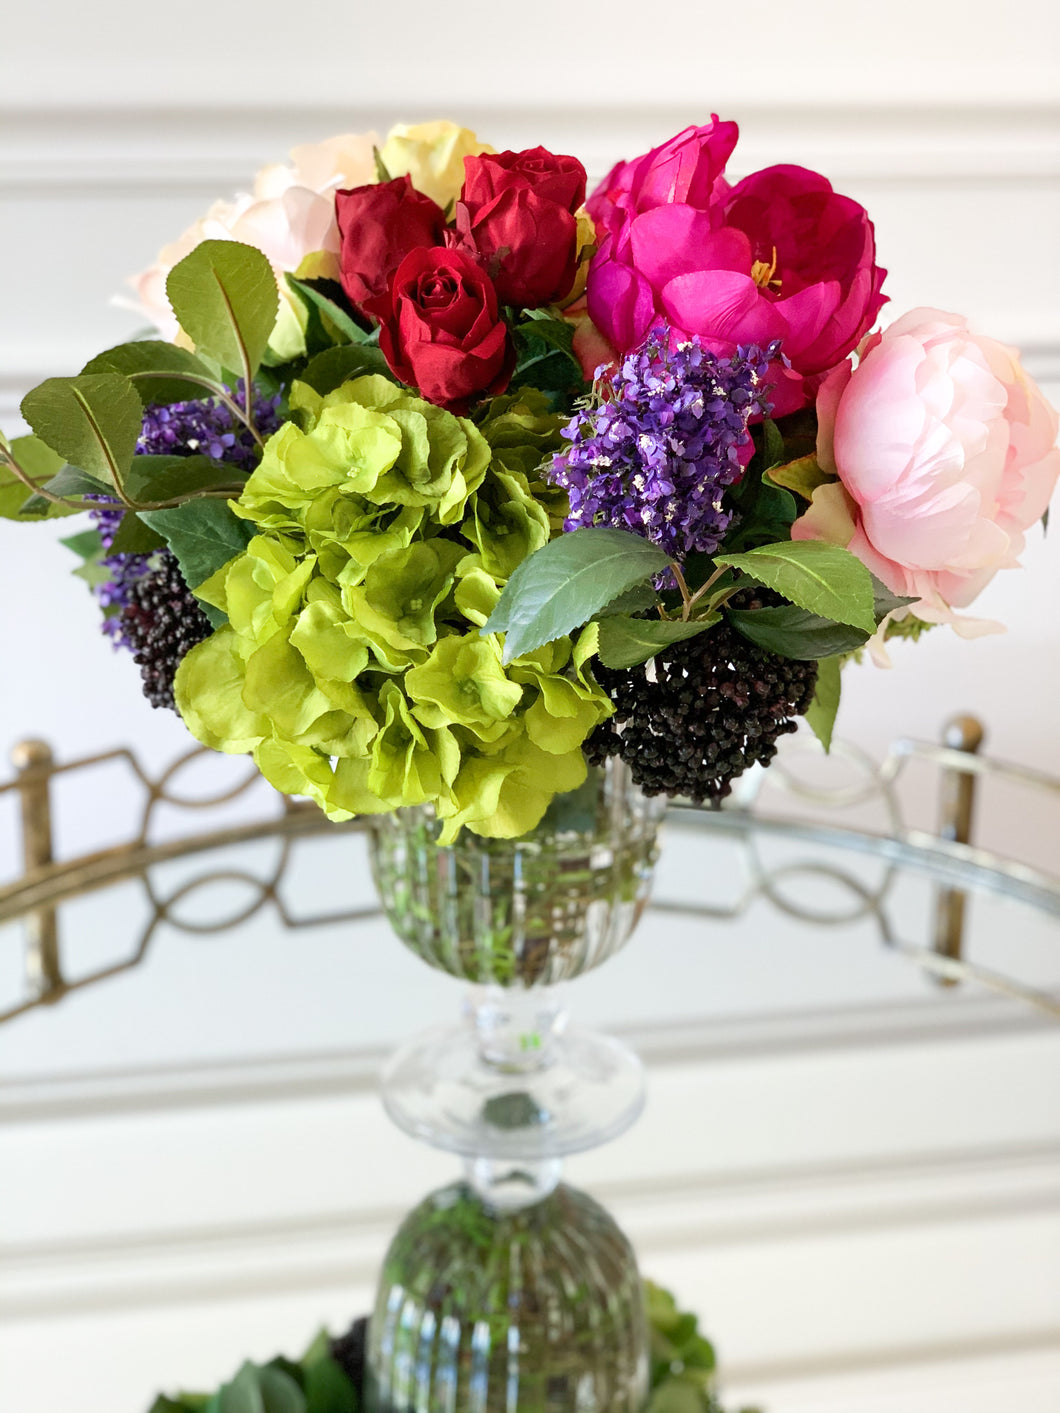 Rose, Peony, and Hydrangeas in Glass Vase with Acrylic Water